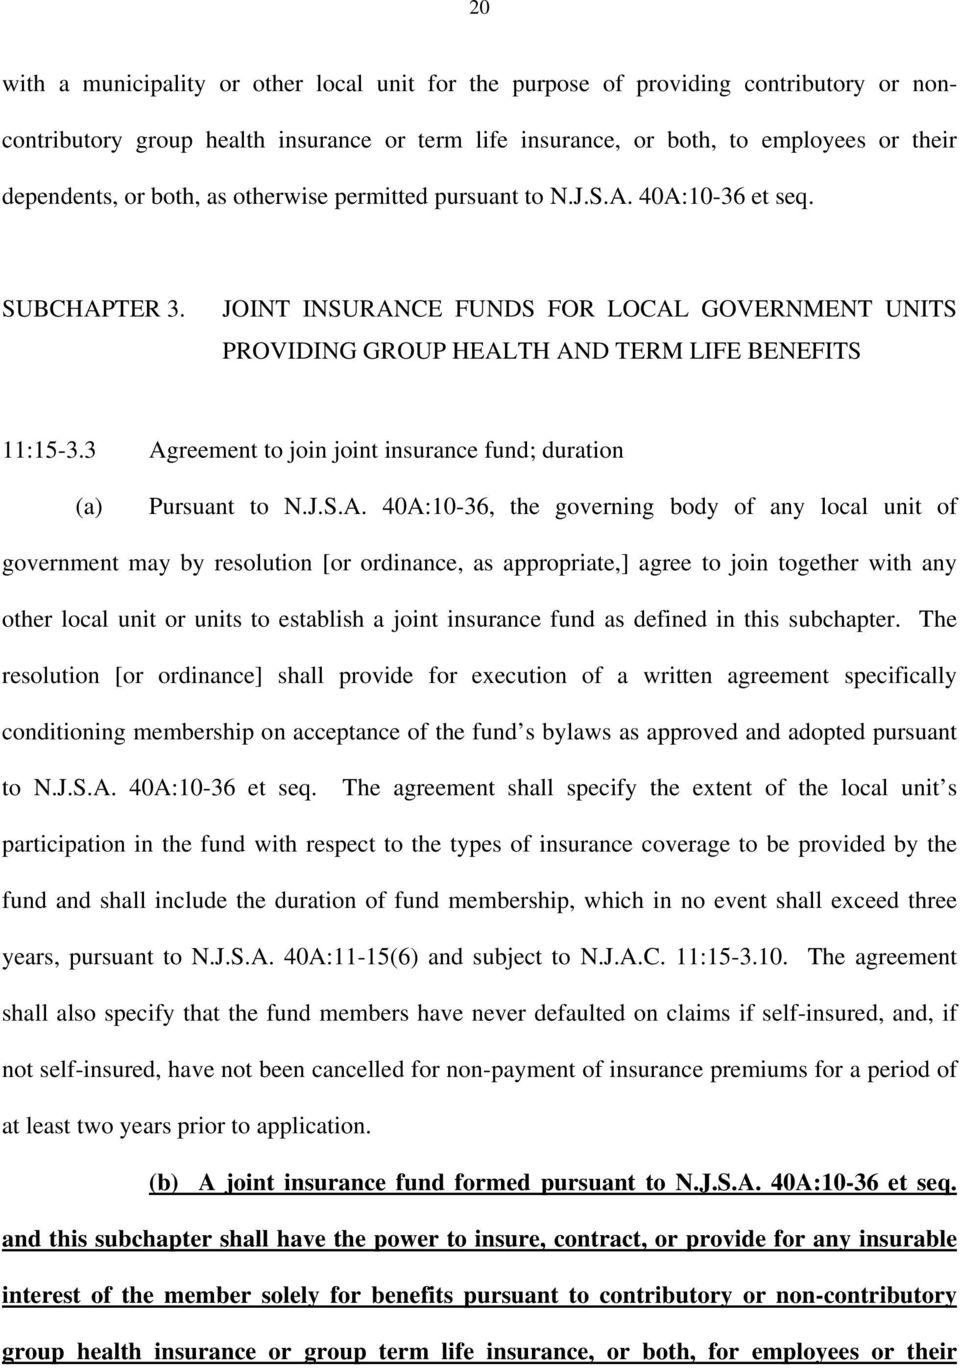 3 Agreement to join joint insurance fund; duration (a) Pursuant to N.J.S.A. 40A:10-36, the governing body of any local unit of government may by resolution [or ordinance, as appropriate,] agree to